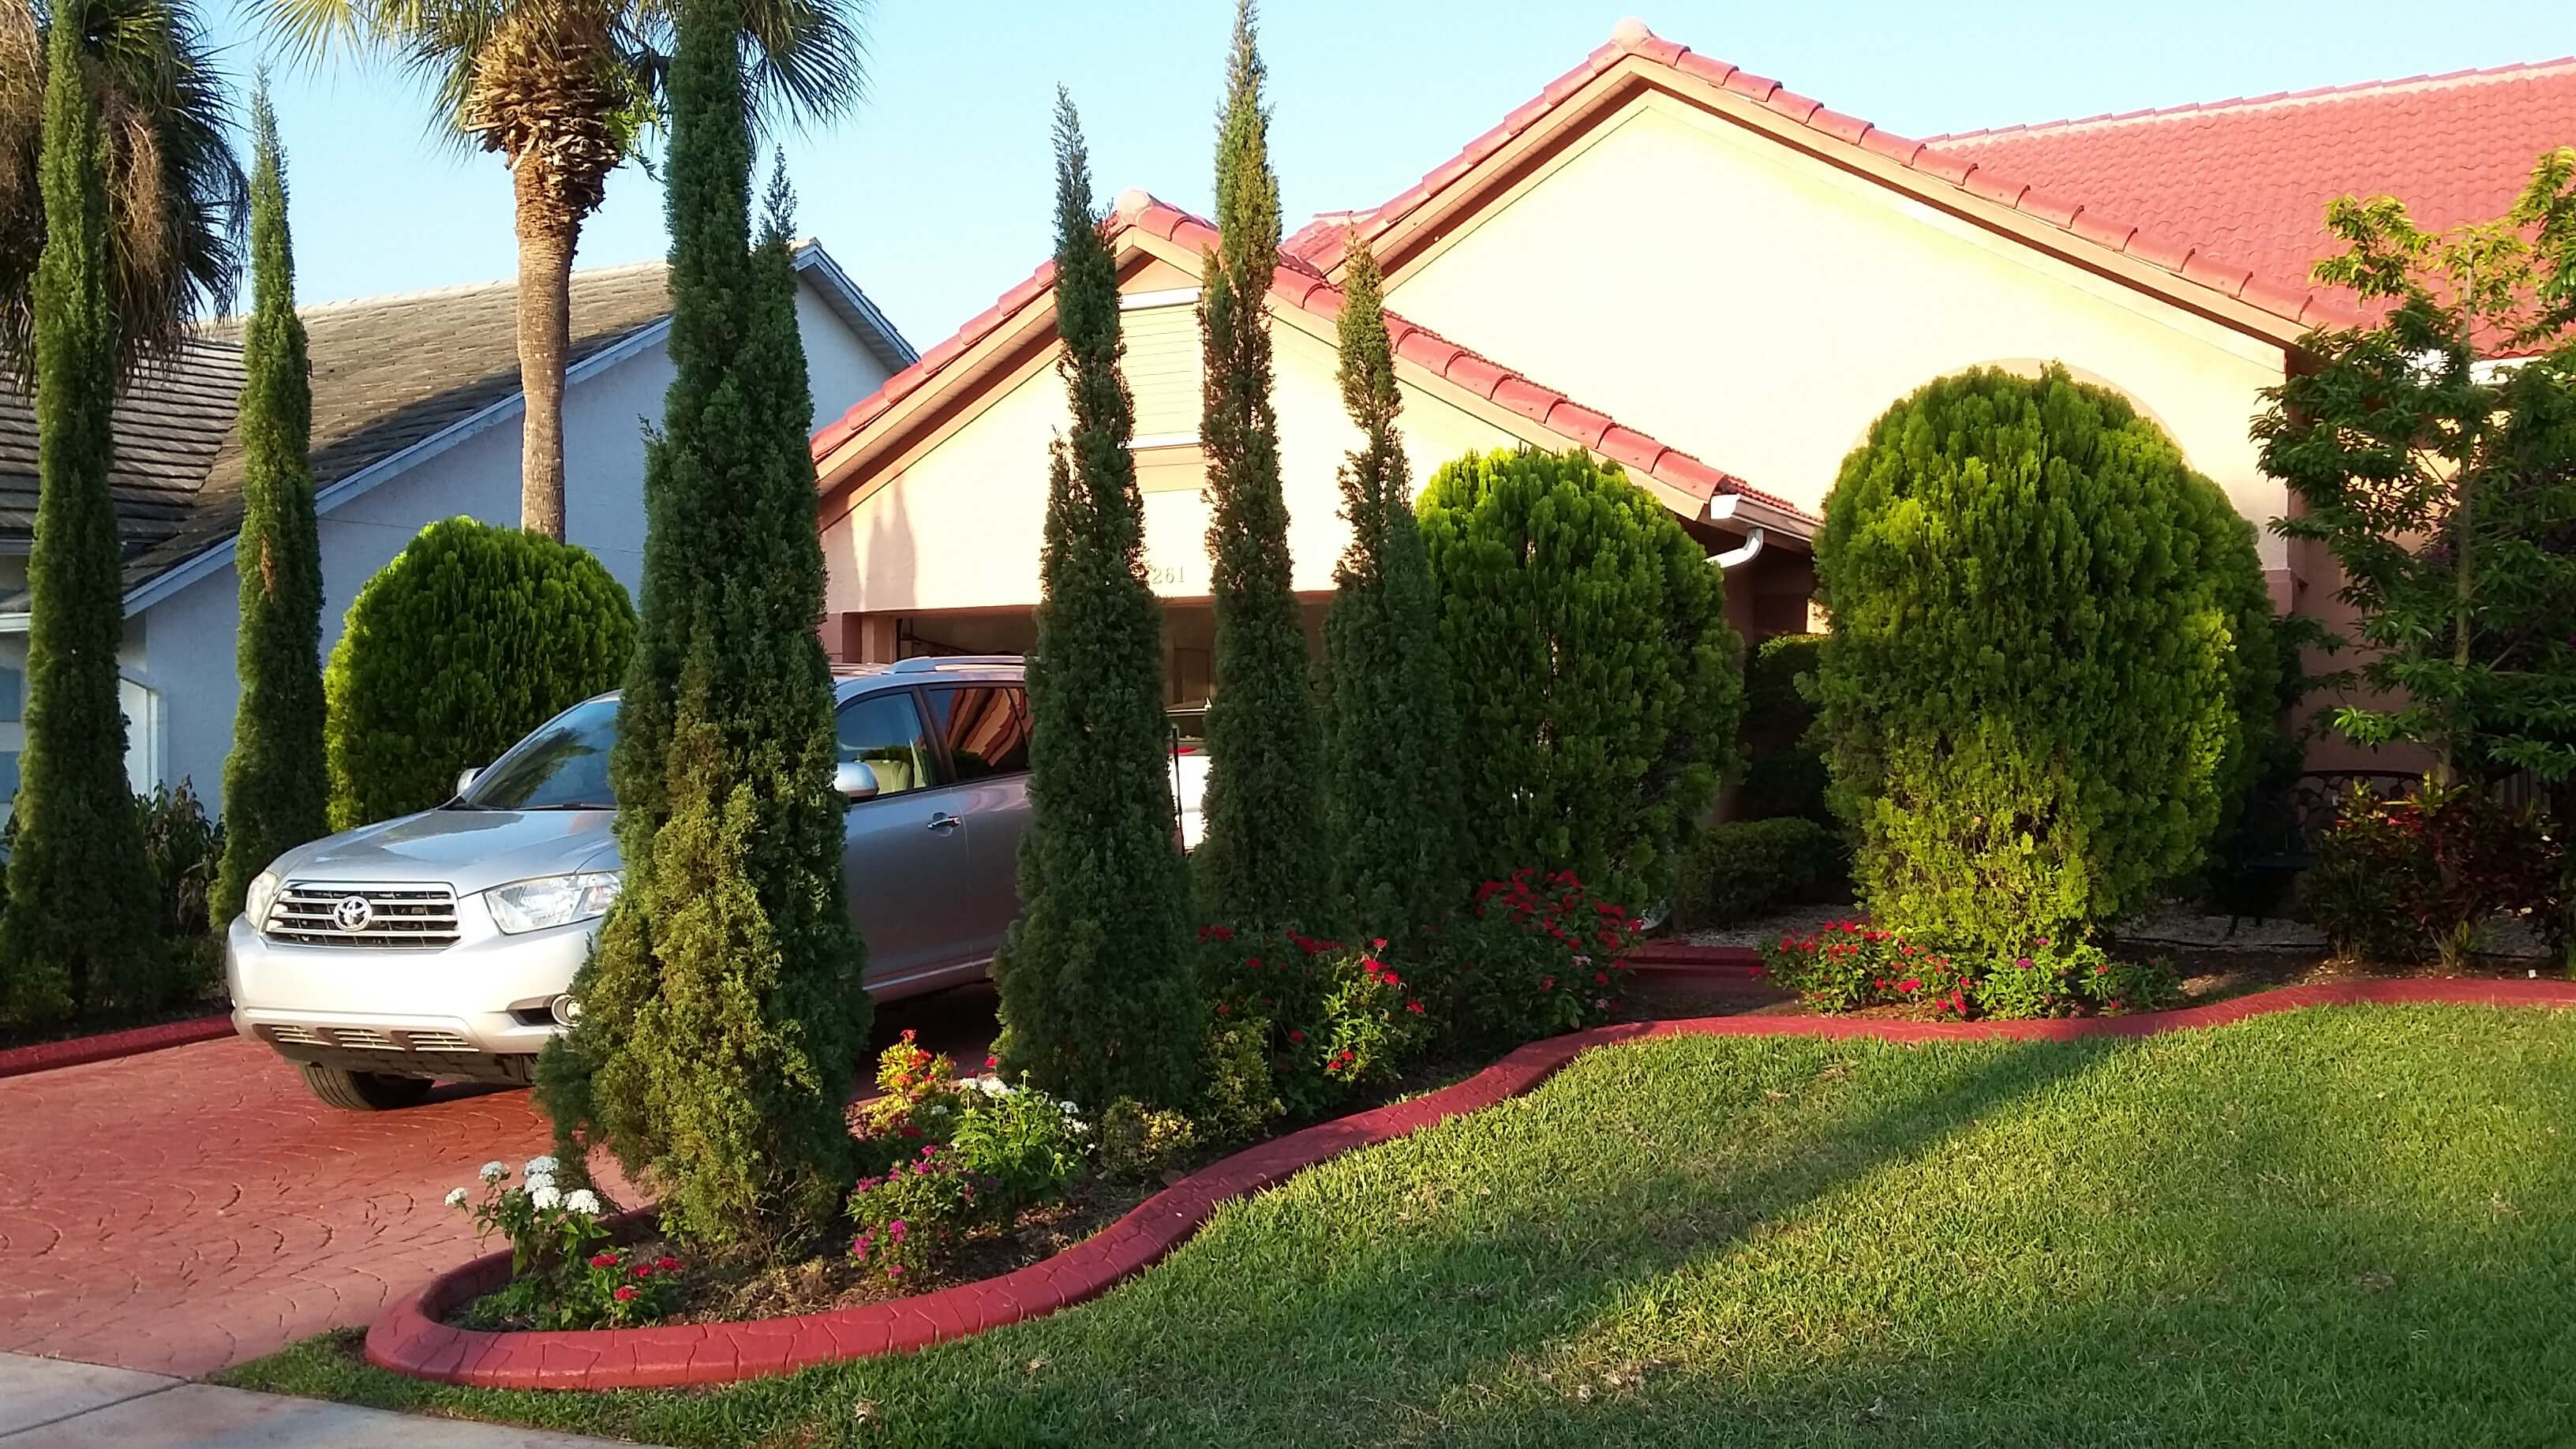 Boca Raton borders, edging, curbs, decorative landscaping